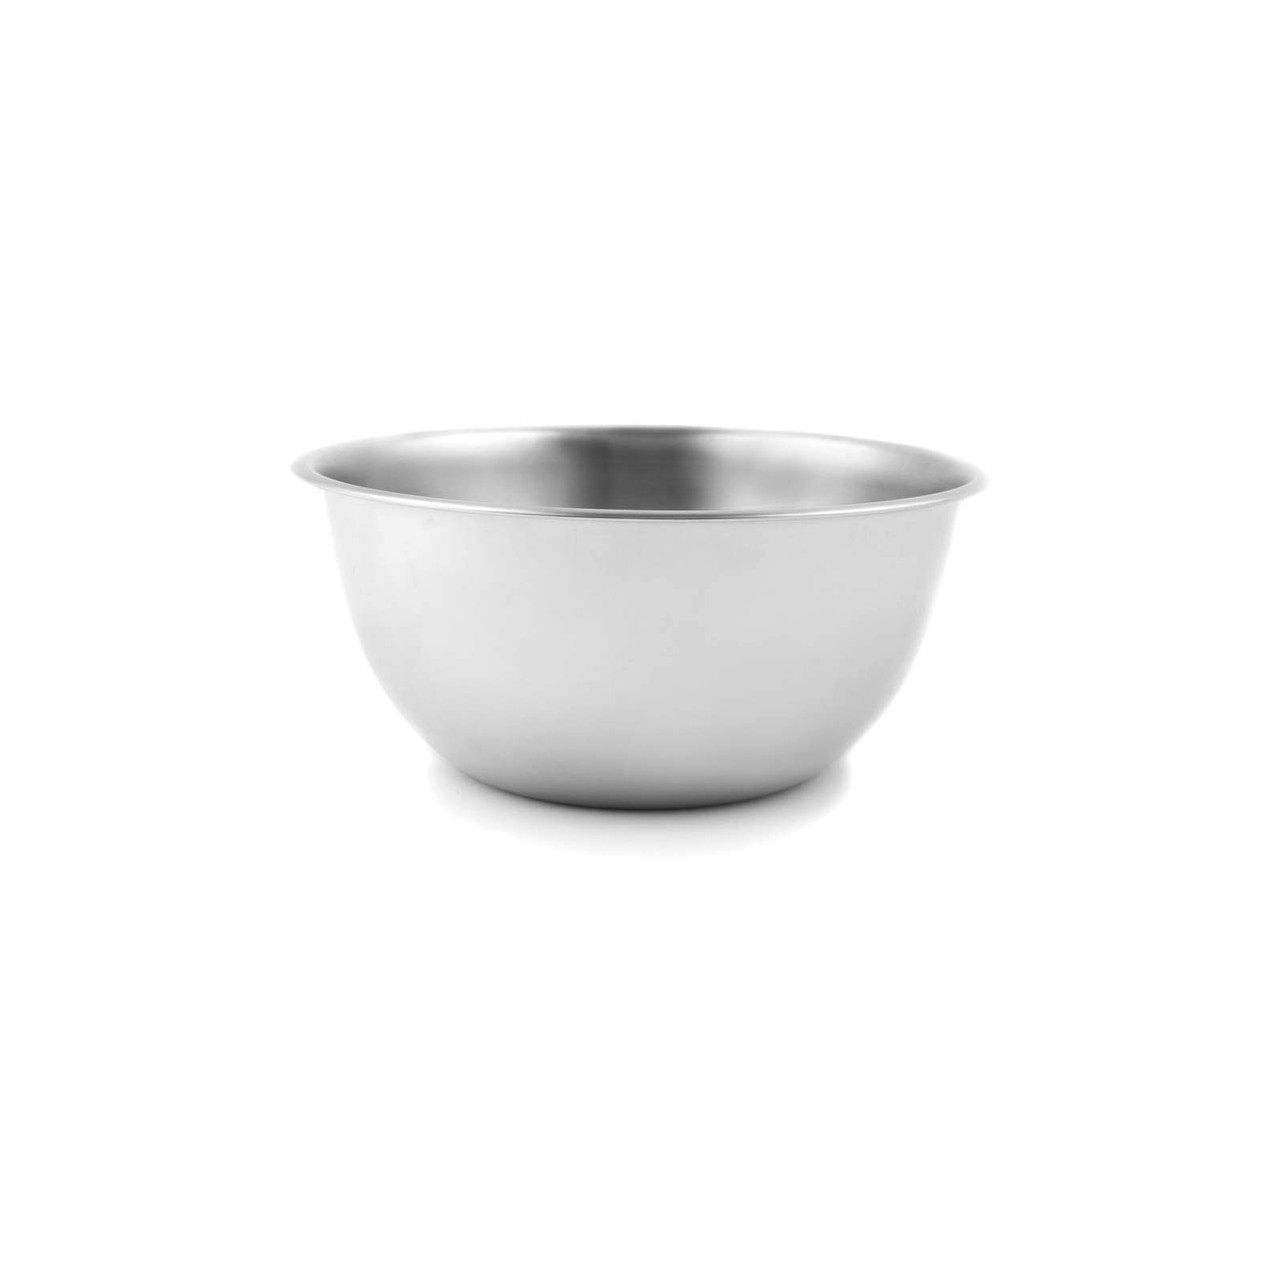 FOX RUN STAINLESS STEEL MIXING BOWL 2.75QT